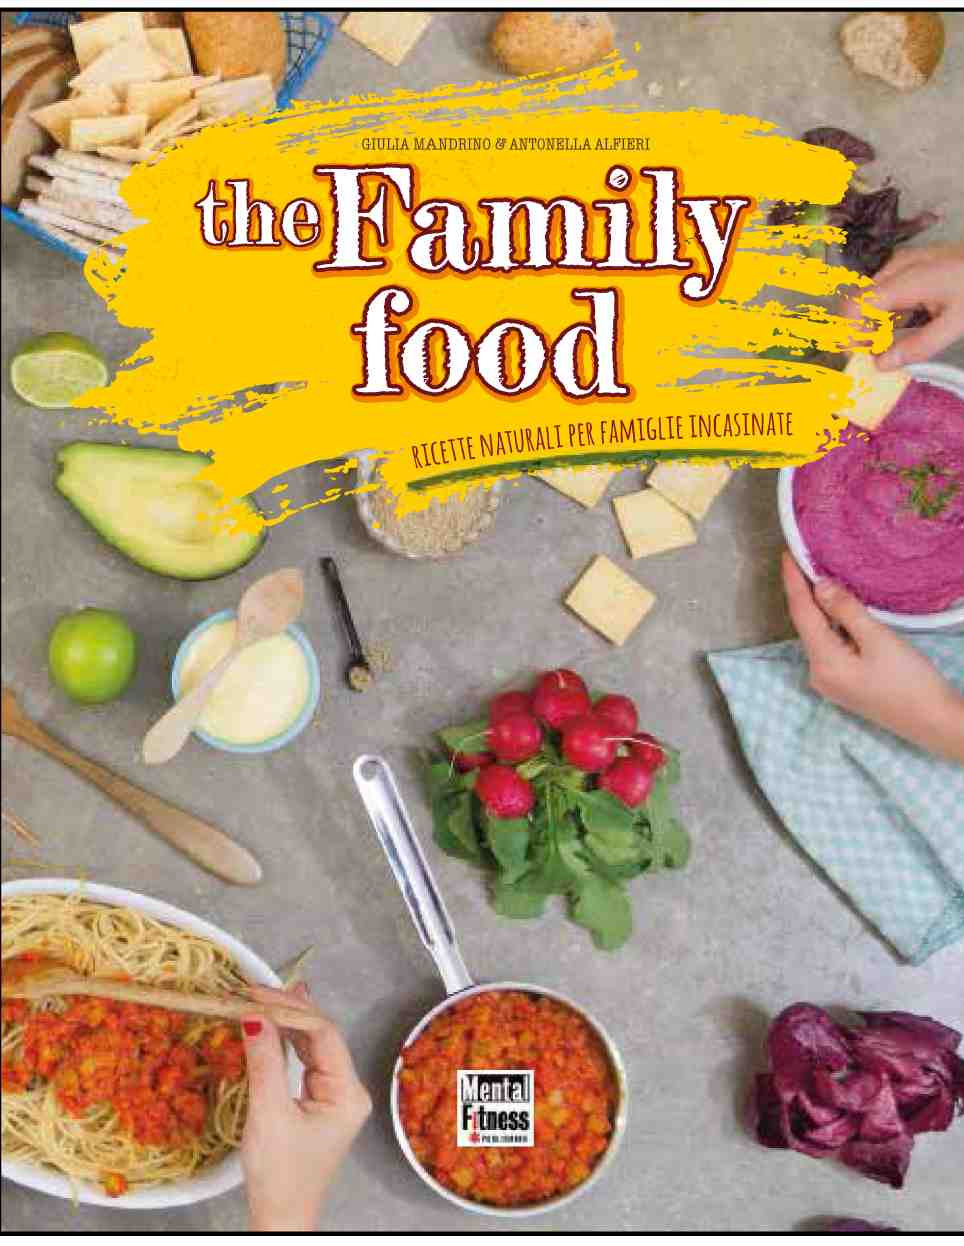 The Family food - Ricette naturali per famiglie incasinate